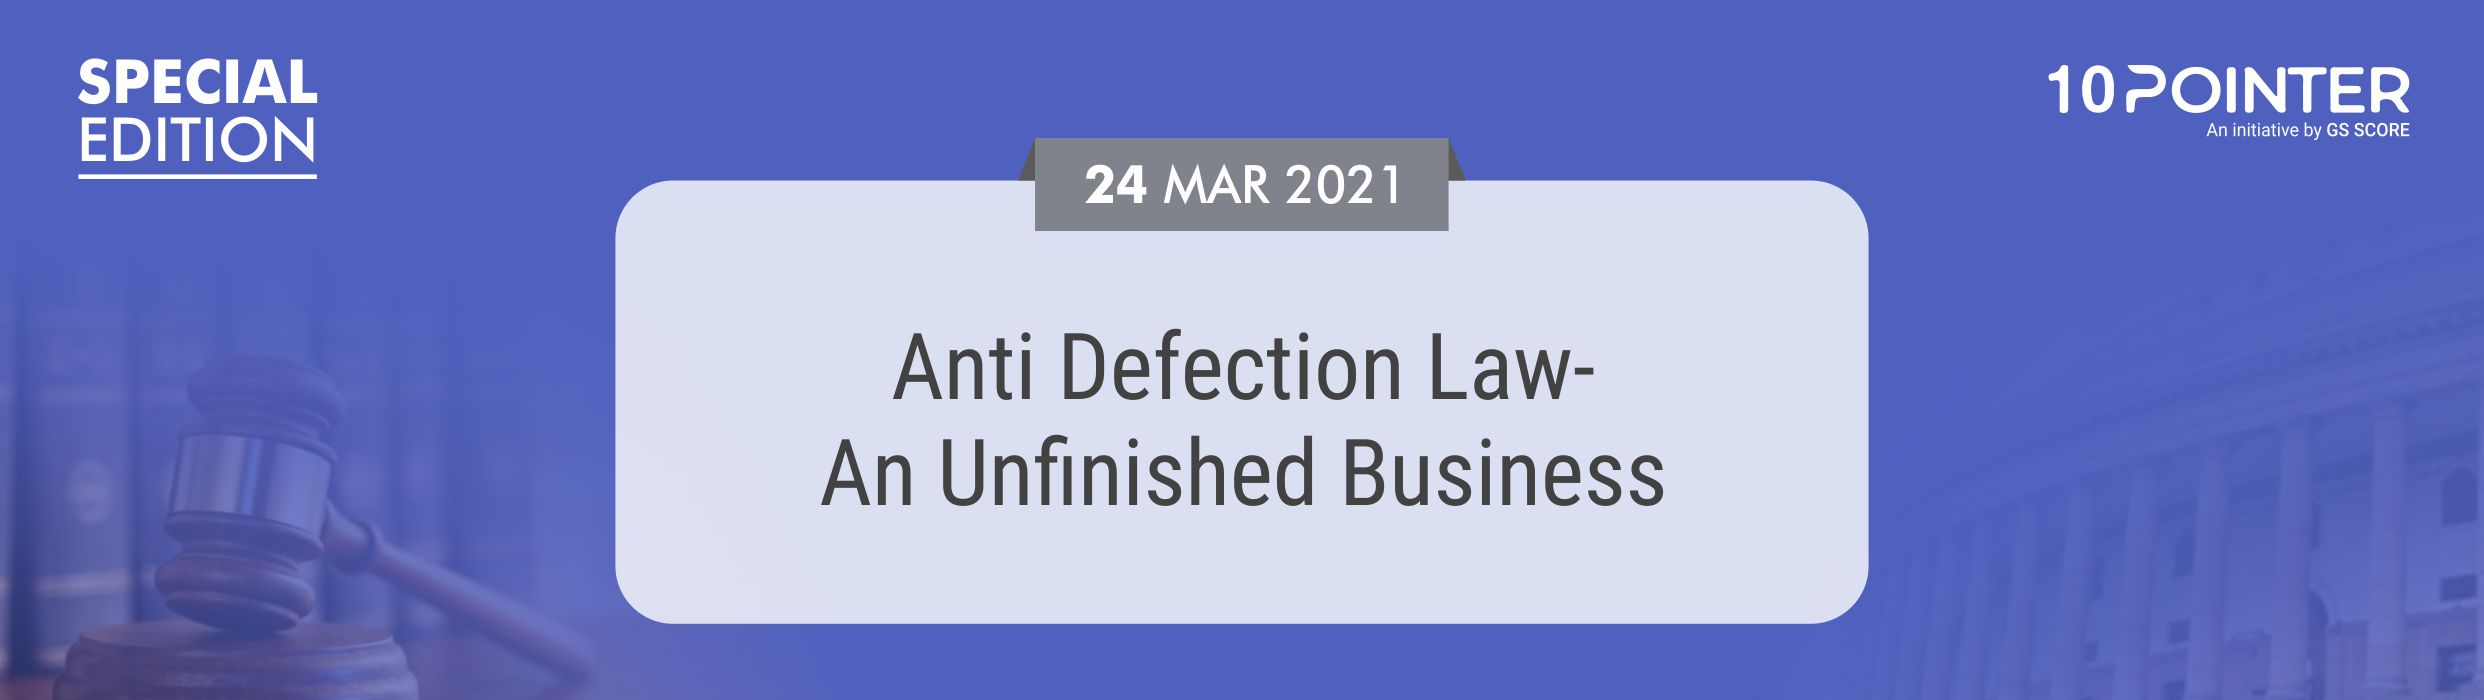 Anti Defection Law- An Unfinished Business